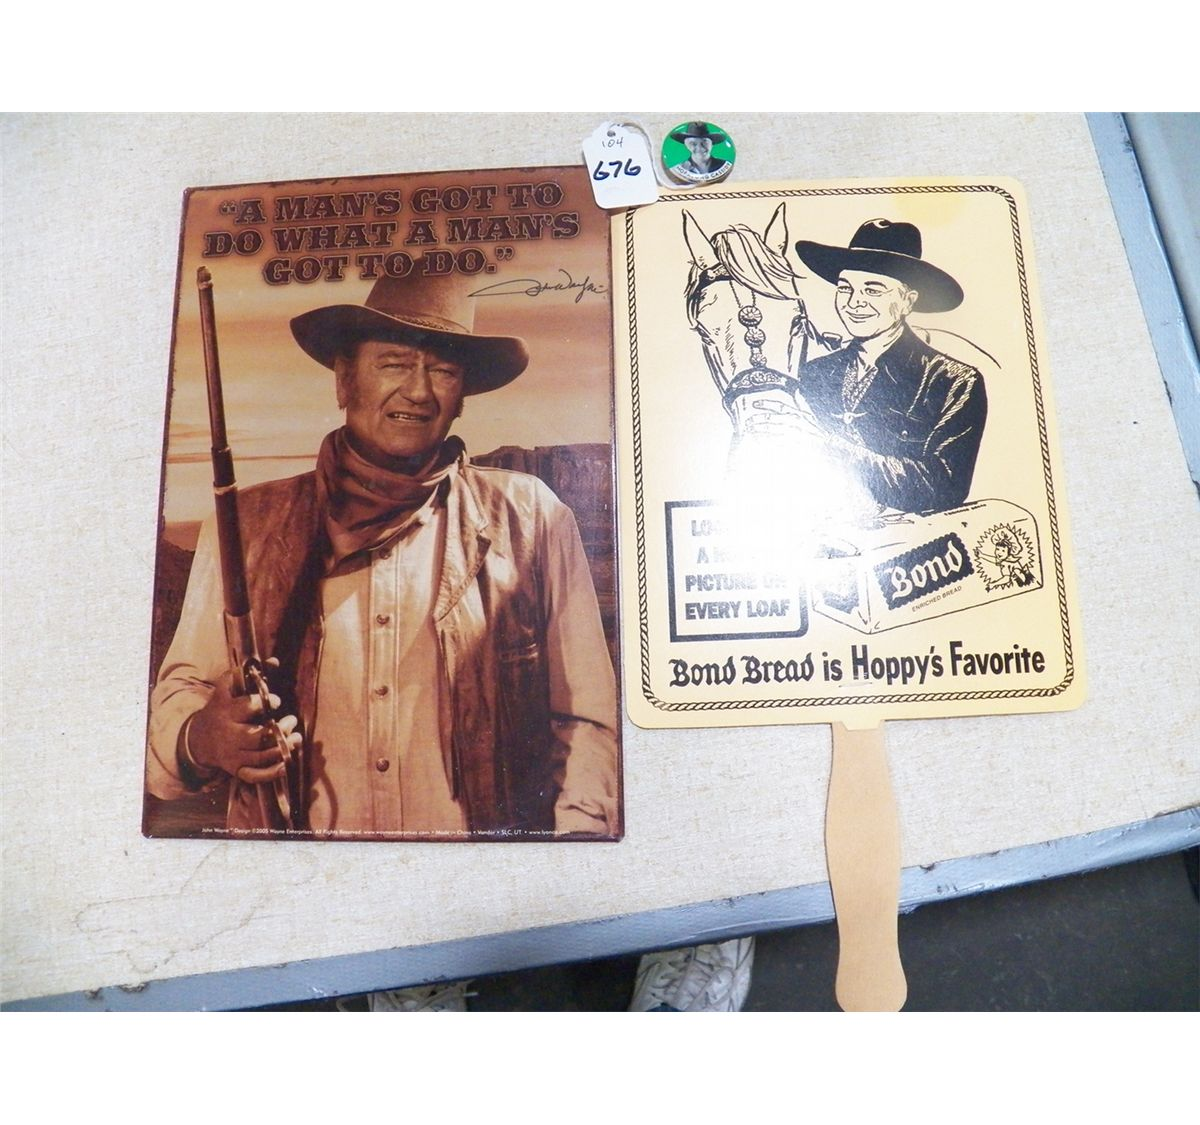 Misc. Lot Of Western Items 1- 8 X 12 John Wayne On Tin, 1